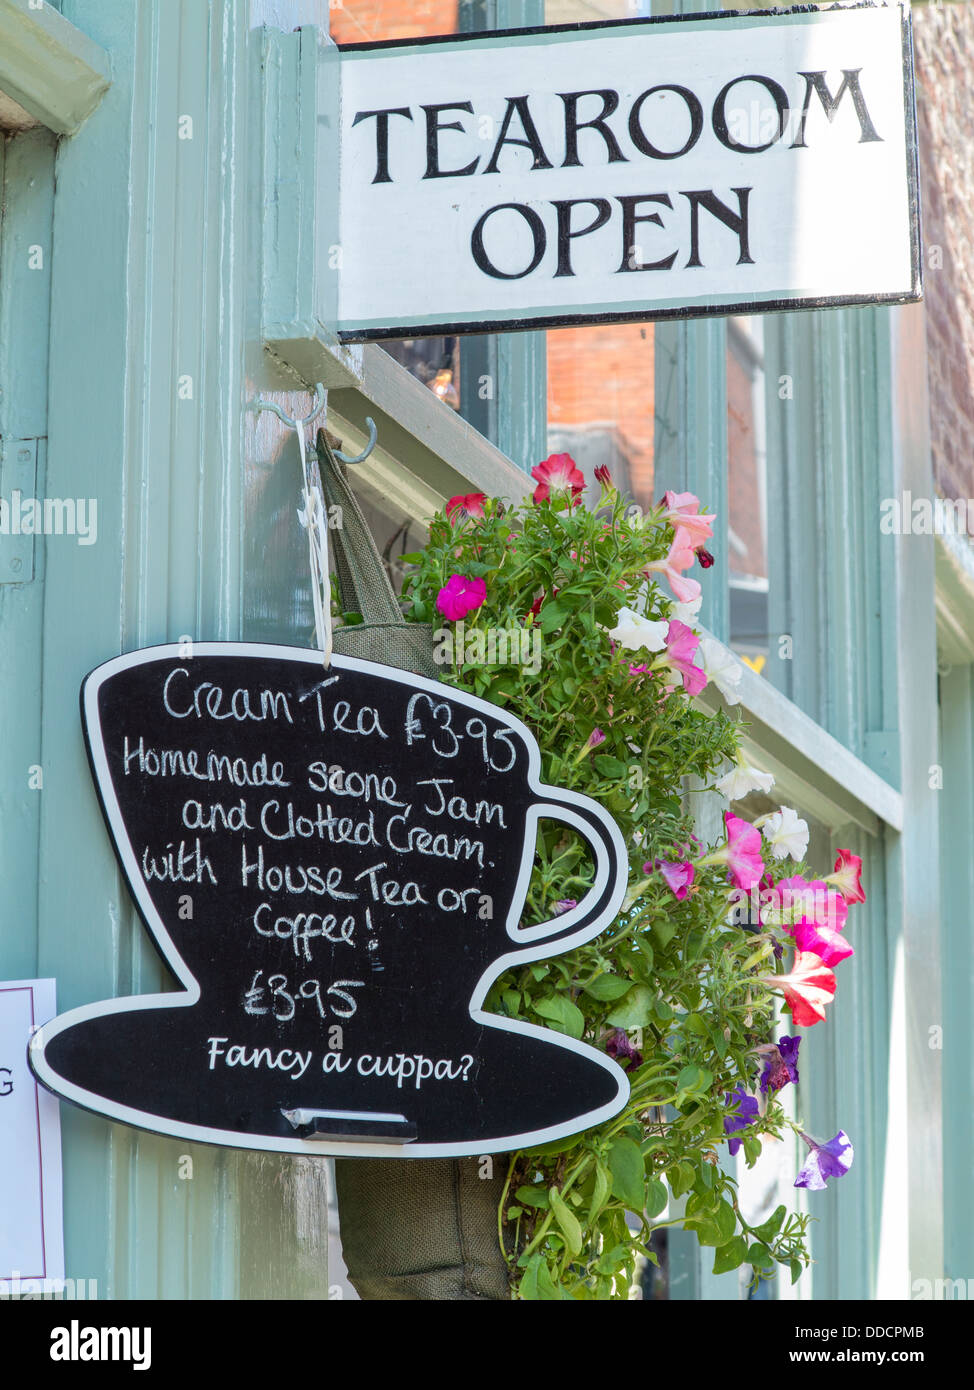 Tearoom with cup and saucer blackboard sign offering cream tea with scones and clotted cream, Steep Hill, Lincoln - Stock Image